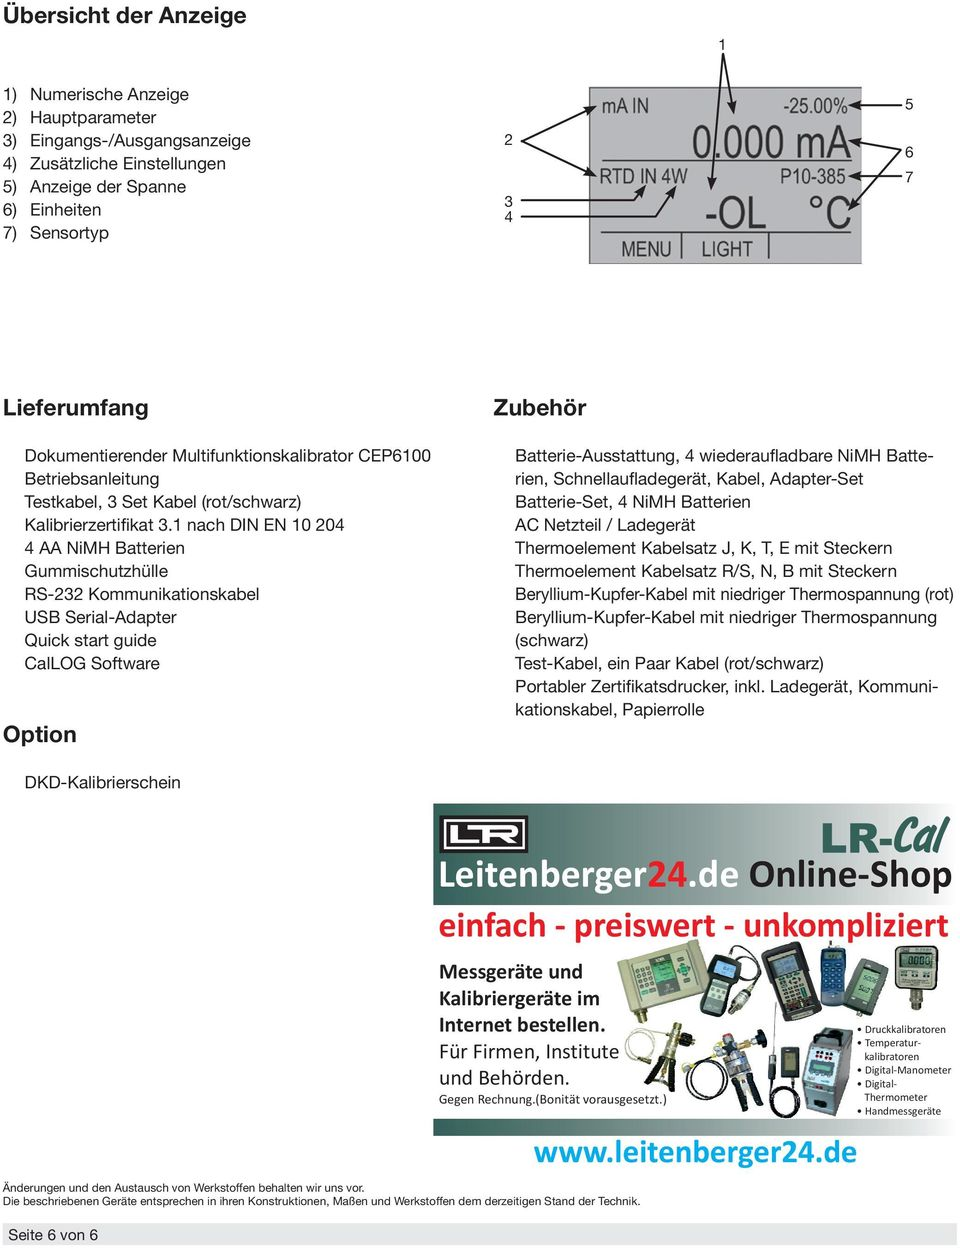 1 nach DIN EN 10 204 4 AA NiMH Batterien Gummischutzhülle RS-232 Kommunikationskabel USB Serial-Adapter Quick start guide CalLOG Software Option Batterie-Ausstattung, 4 wiederaufladbare NiMH